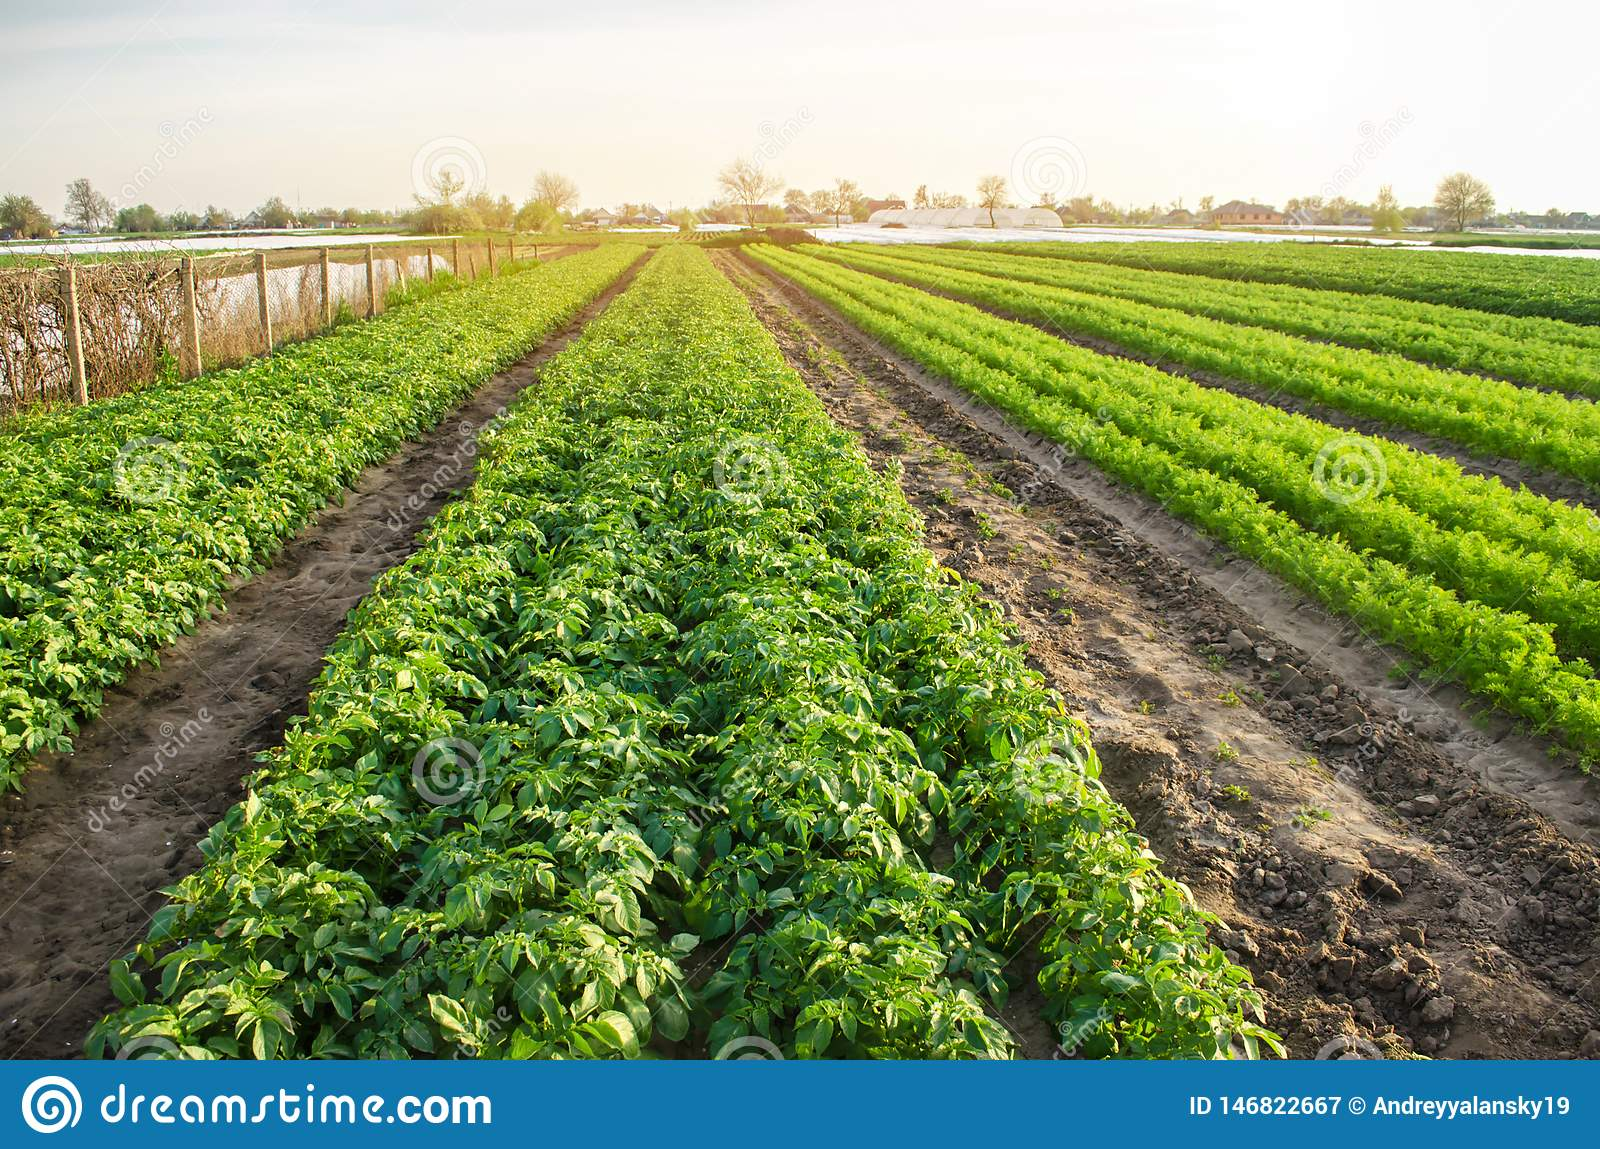 Agricultural landscape with vegetable plantations. Growing organic vegetables in the field. Farm agriculture. Potatoes and carrot